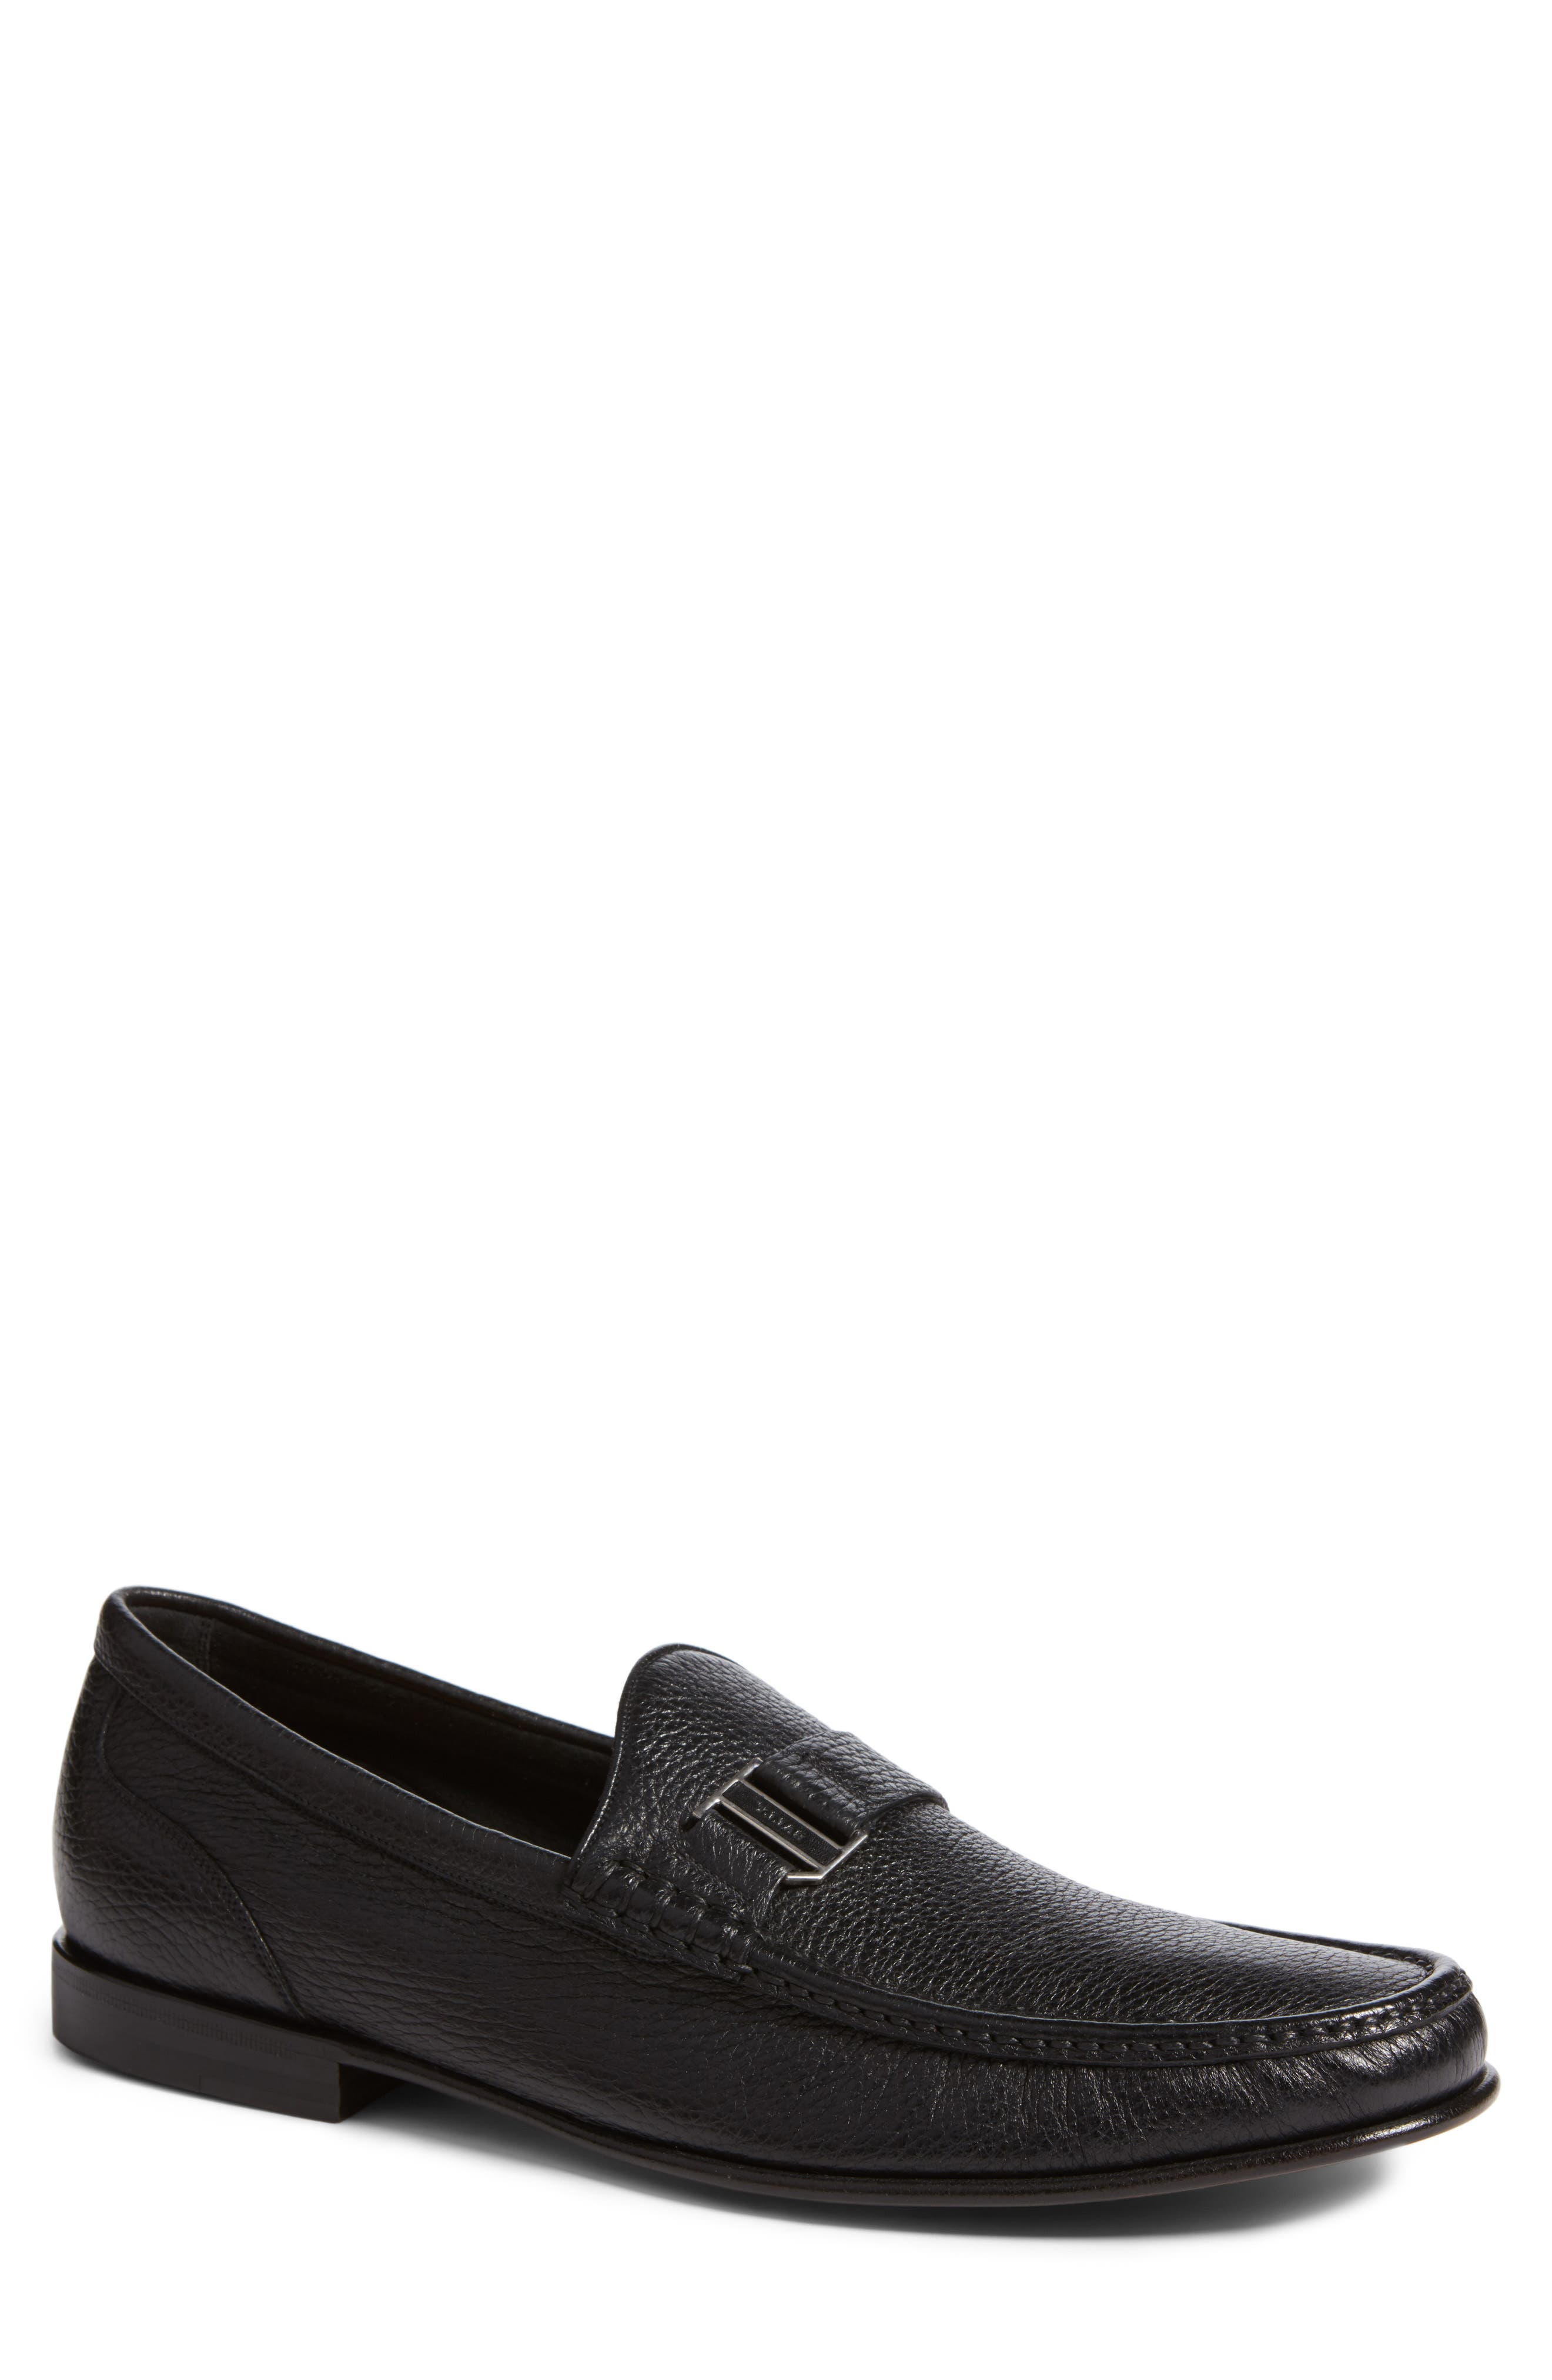 Suver Loafer,                             Main thumbnail 1, color,                             Black